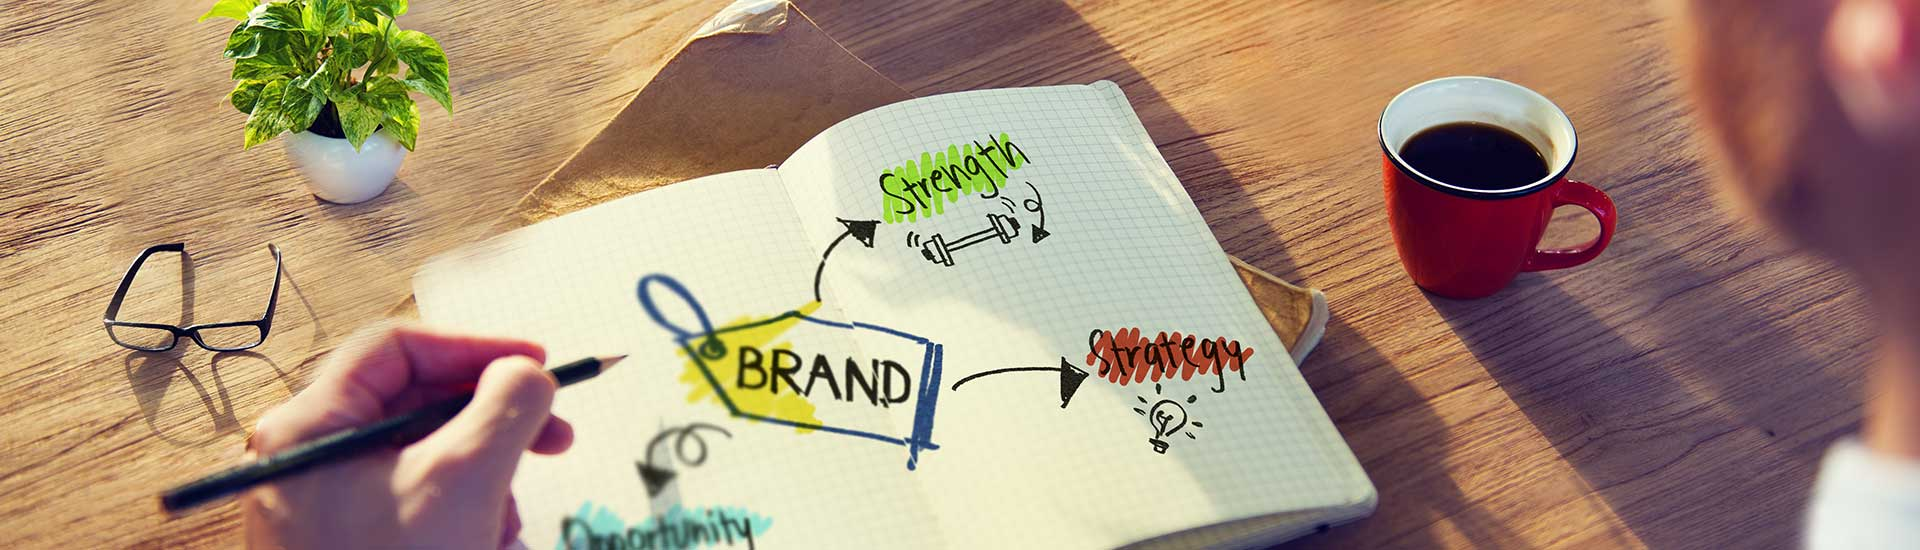 brand management courses online